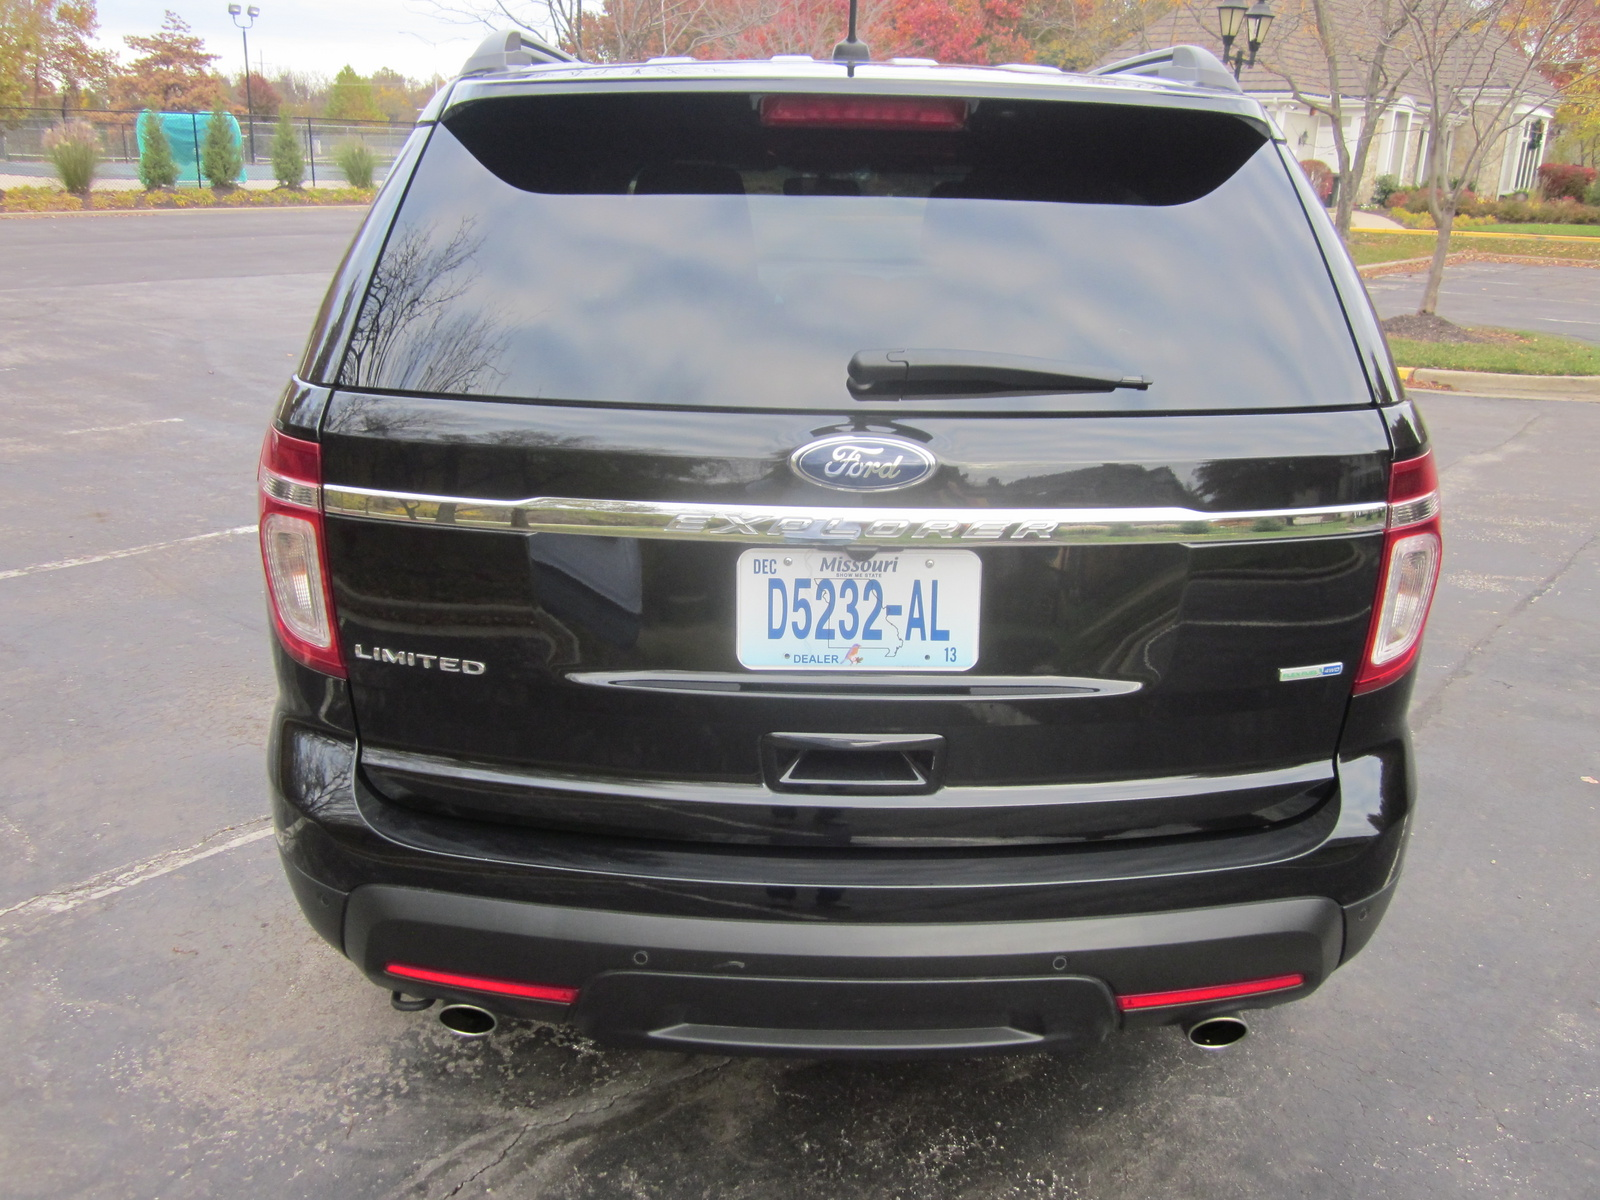 2013 ford explorer limited 4wd picture exterior. Cars Review. Best American Auto & Cars Review